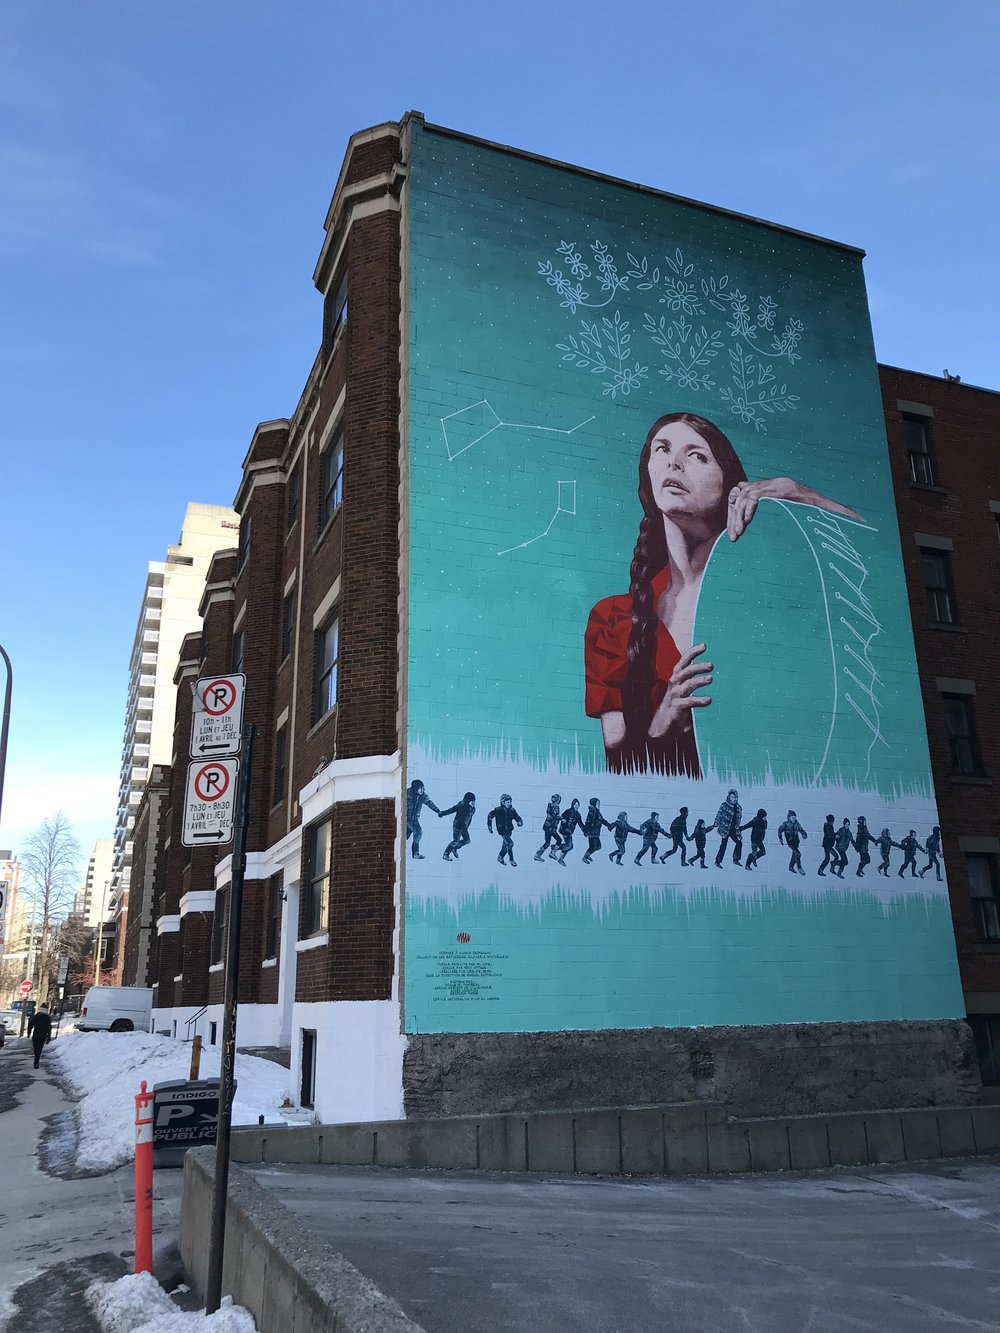 Alanis Obomsawin mural made by Meky Ottawa